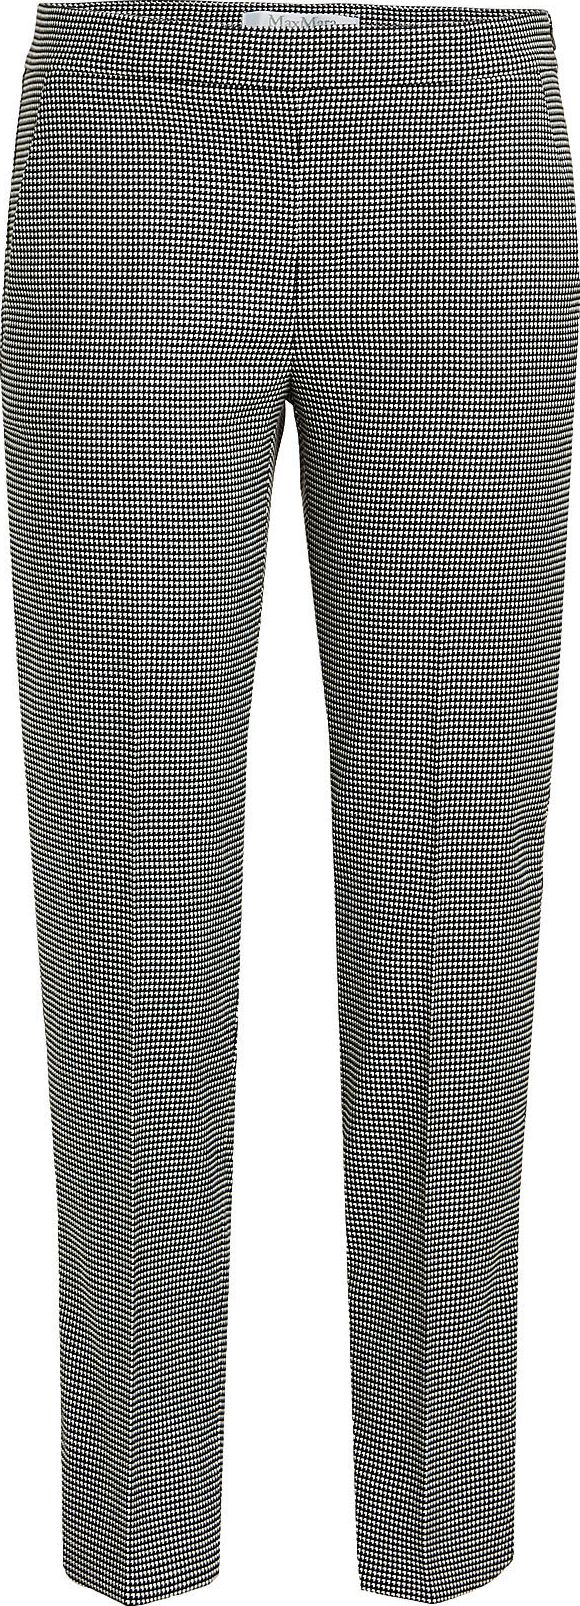 Max Mara - Printed Pants with Wool